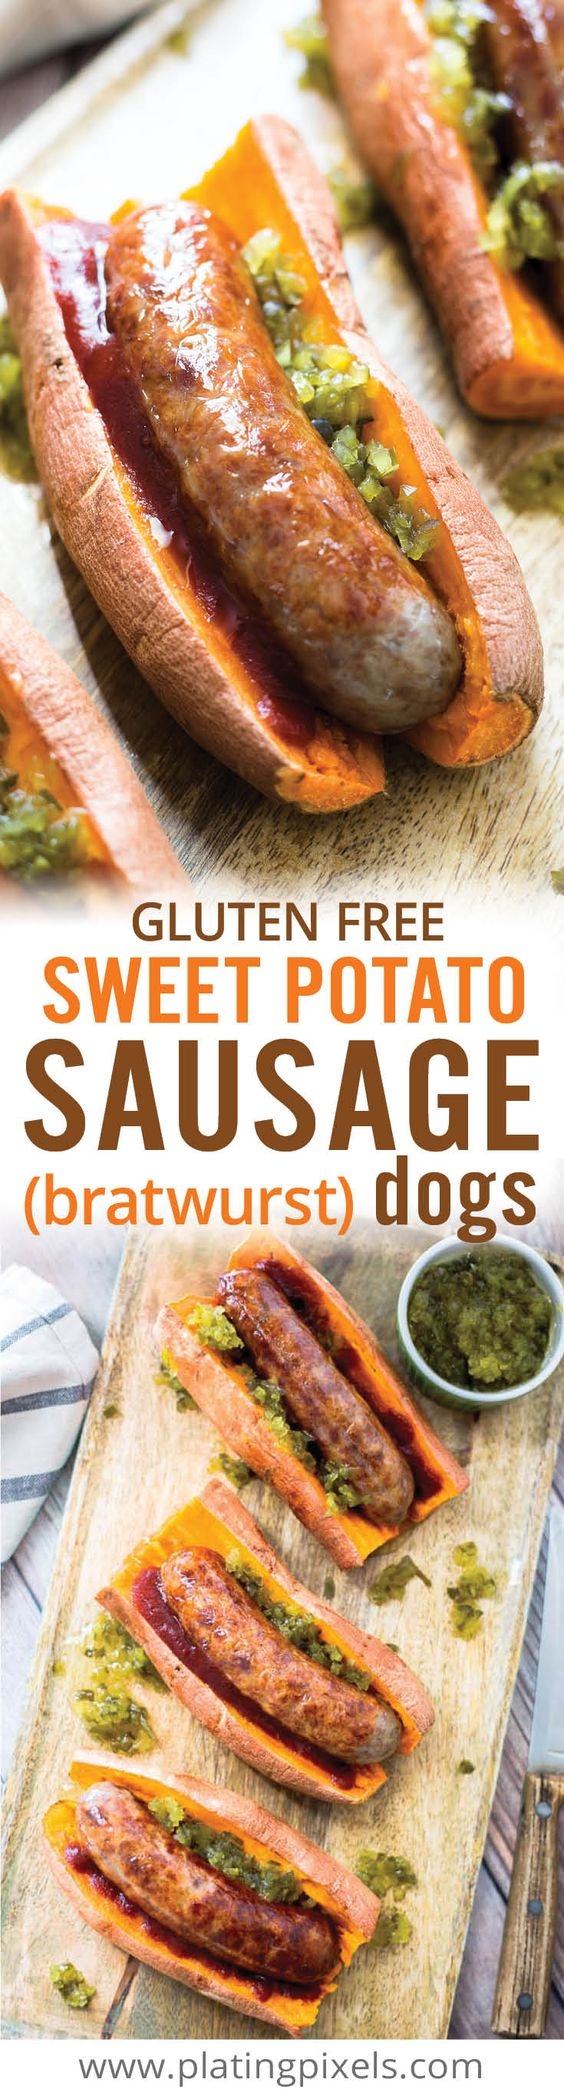 Gluten free and low carb eaters can enjoy these Sweet Potato Sausage Dogs. Seared @jvillesausage bratwurst sausages on a tender sweet potato. A fun and healthy hot dog alternative. #ad www.platingpixels.com